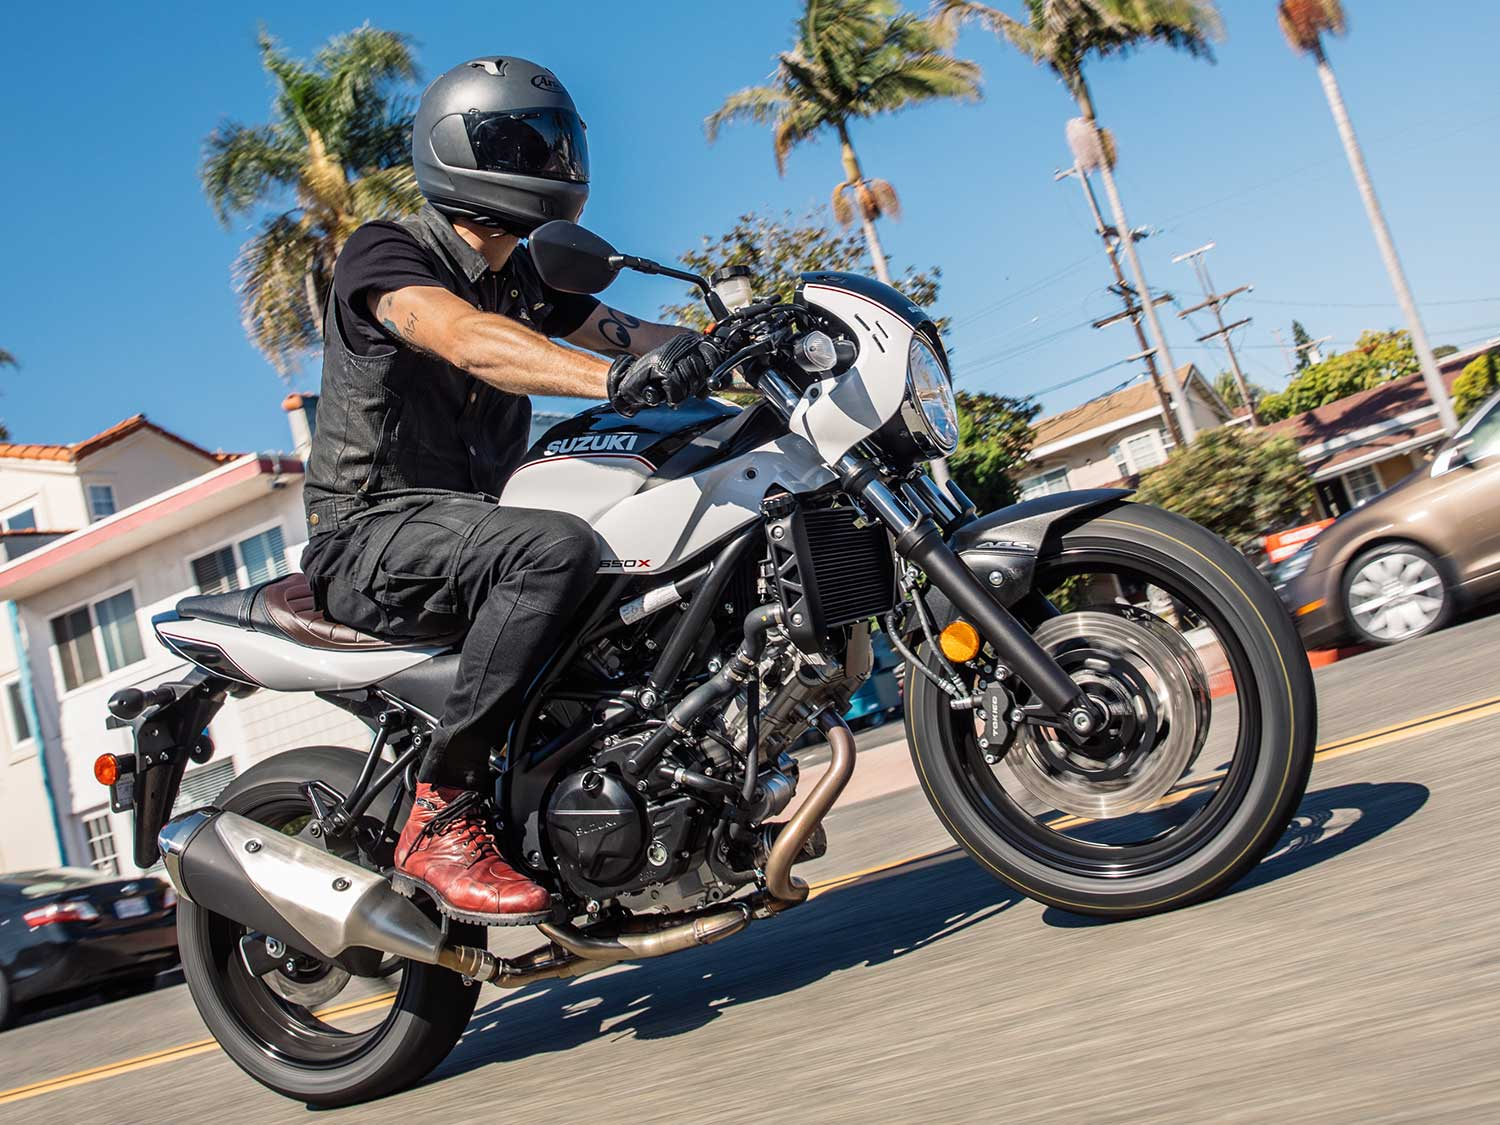 5 Fuel Tuning Modules For Your Motorcycle | Motorcycle Cruiser